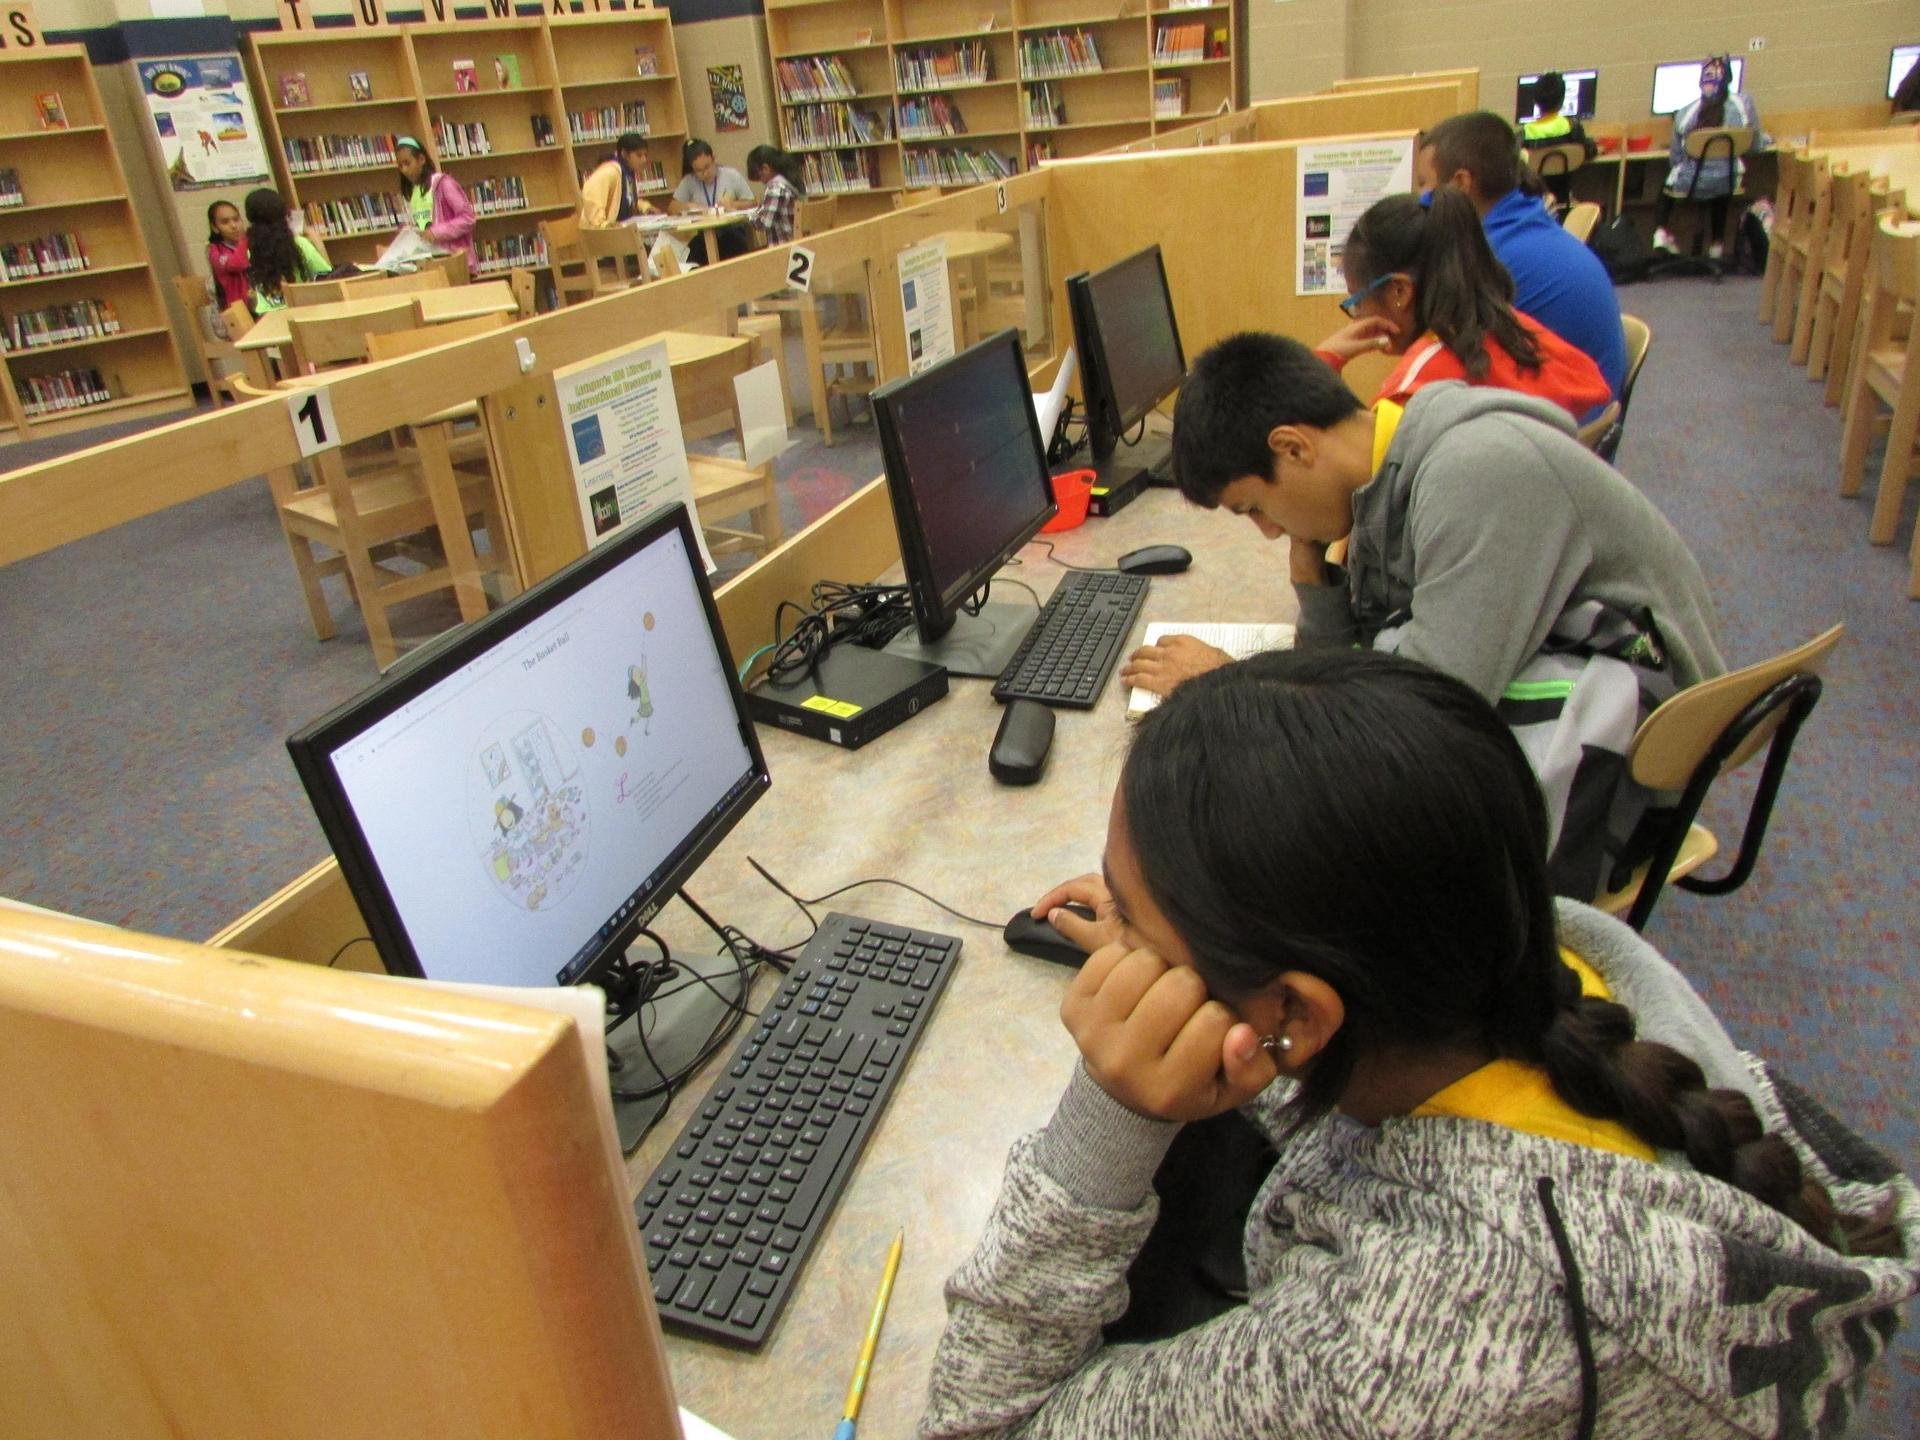 Students working at computers at the library.